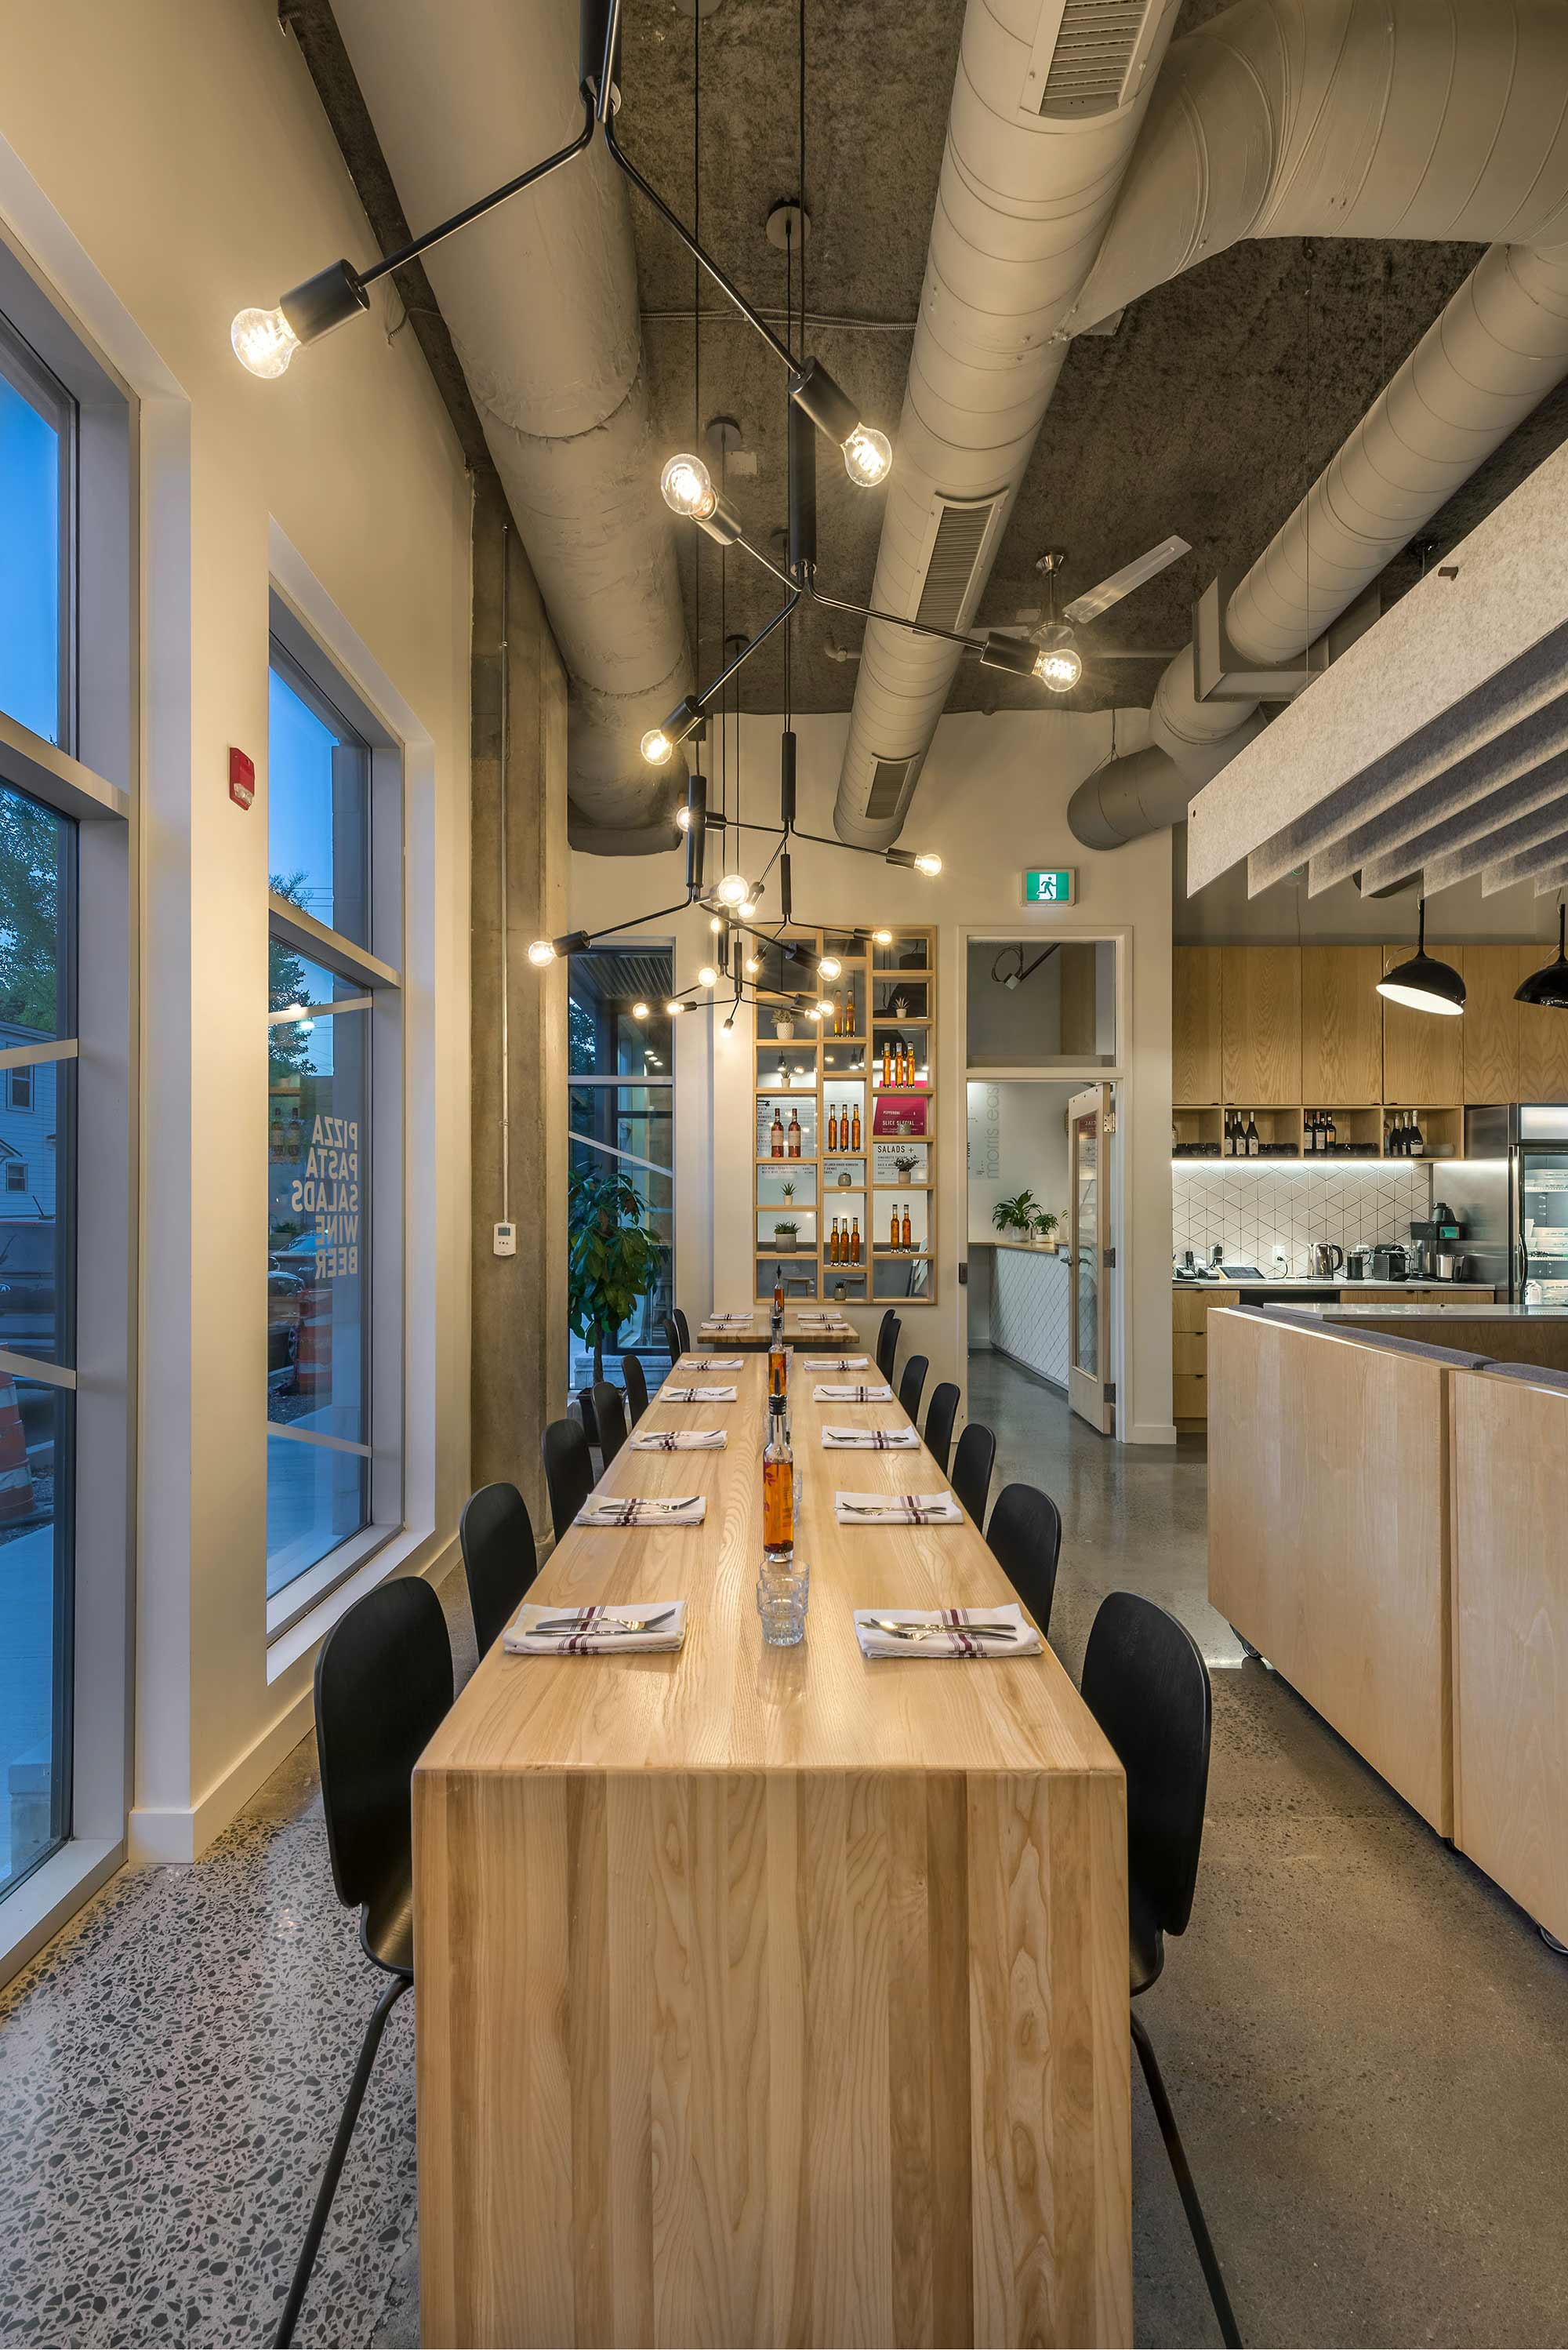 interior-design-restaurant-halifax-table-seating.jpg